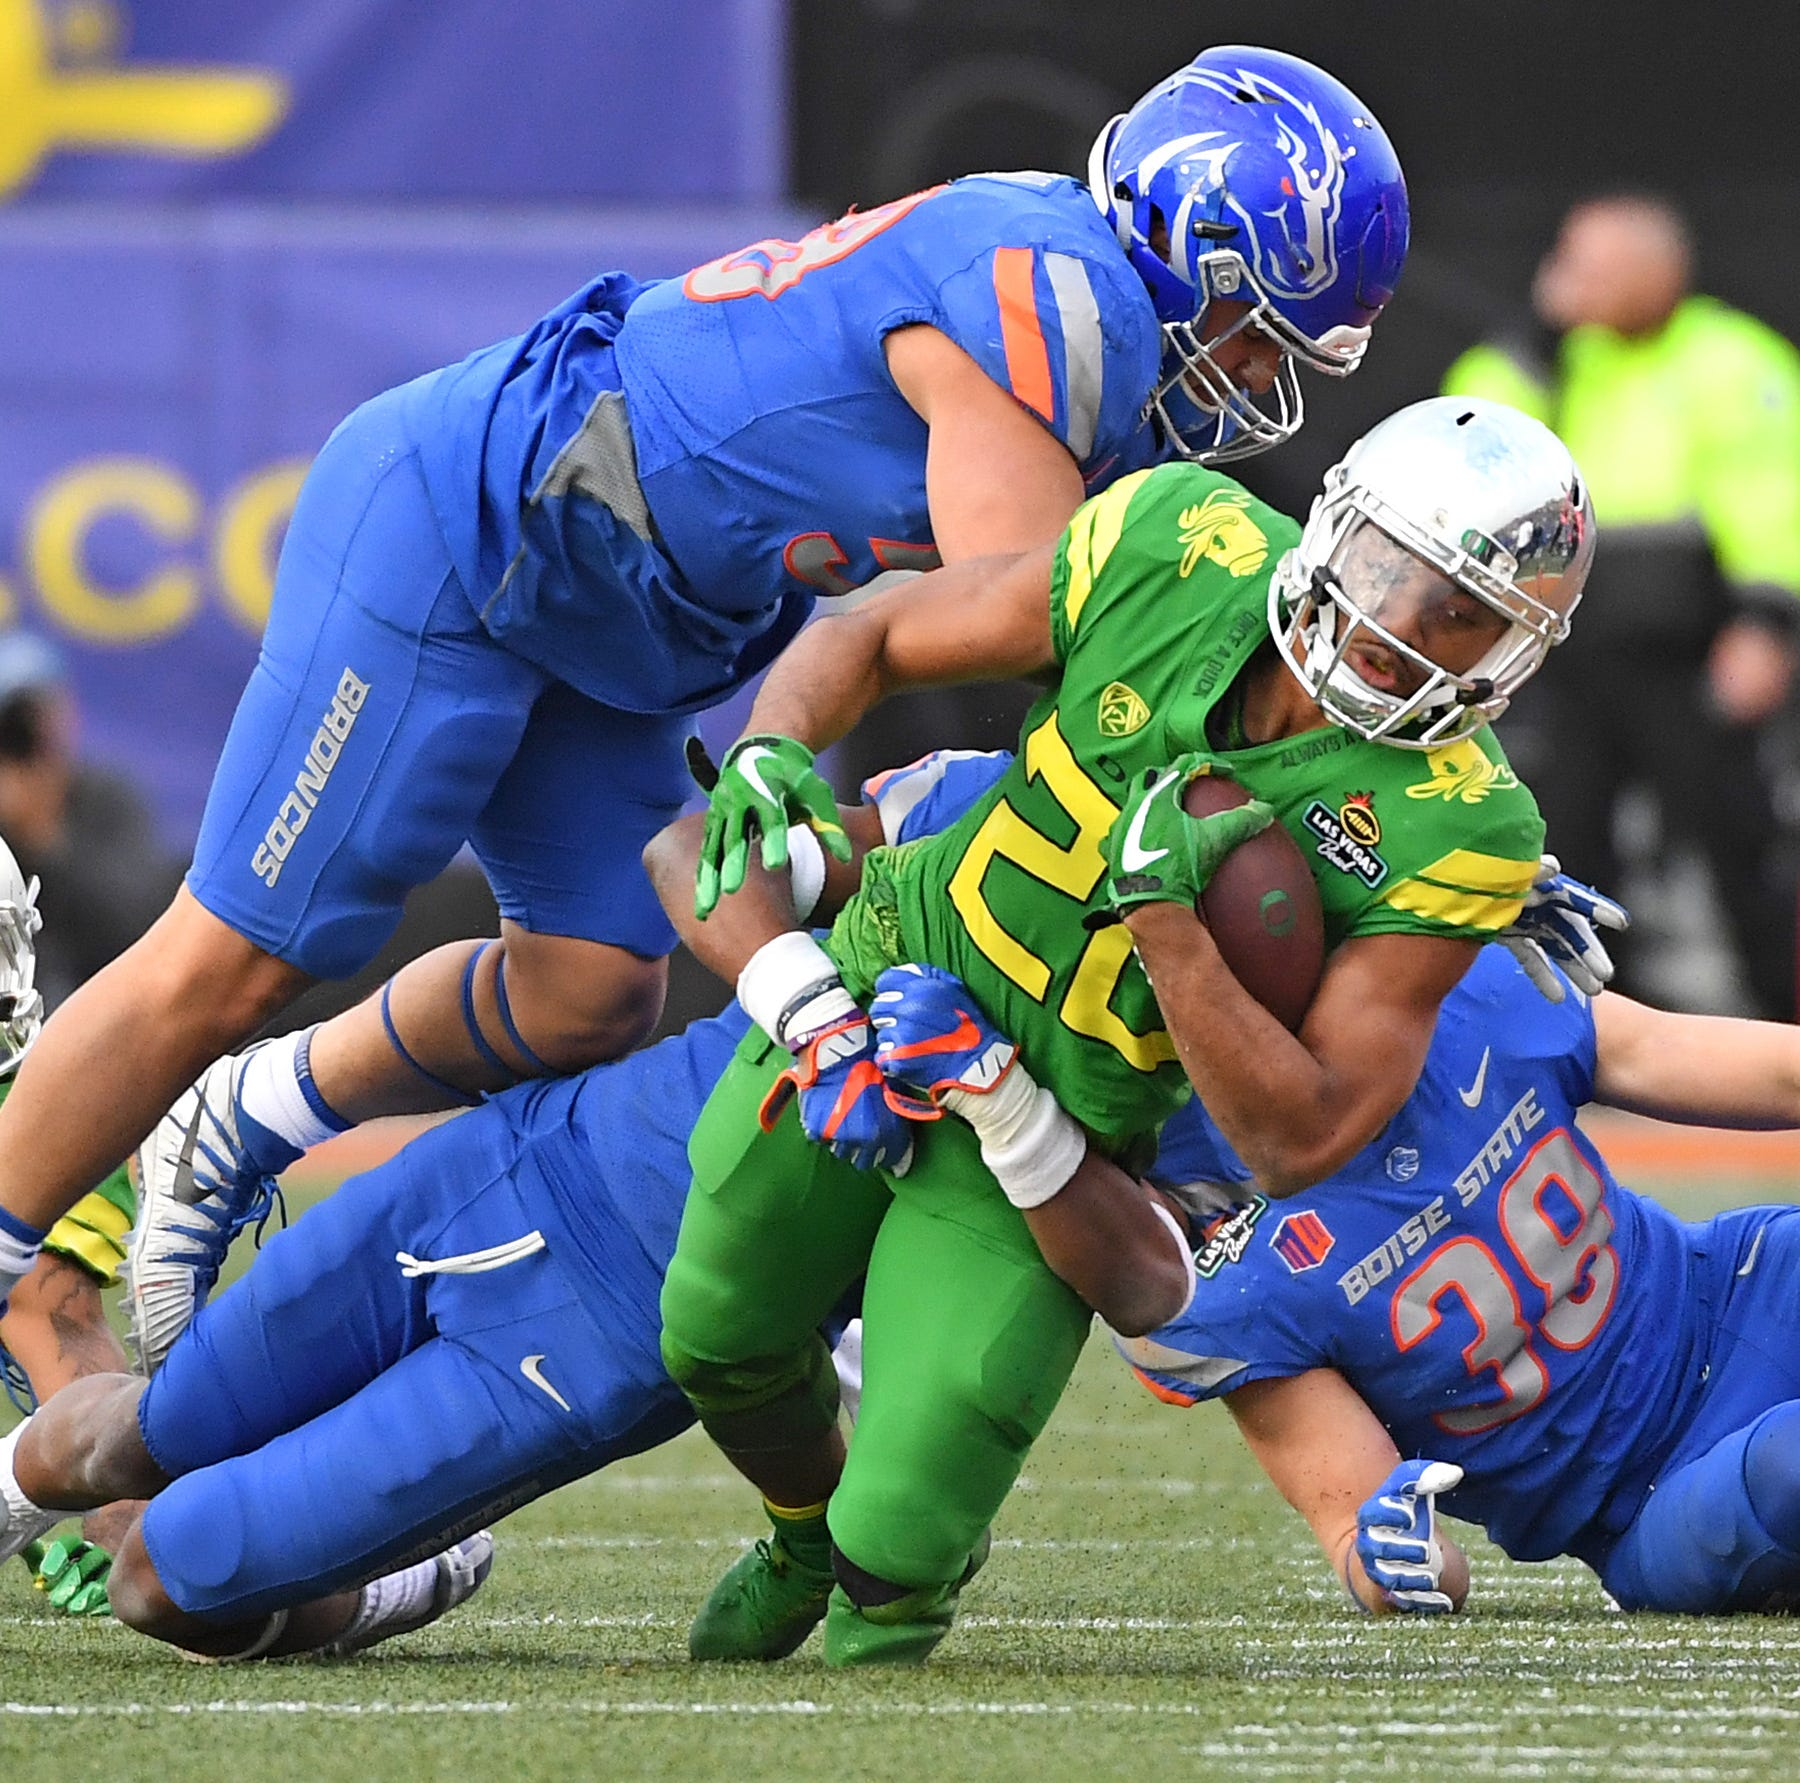 Pac-12 bowl outlook: From abysmal to respectable?